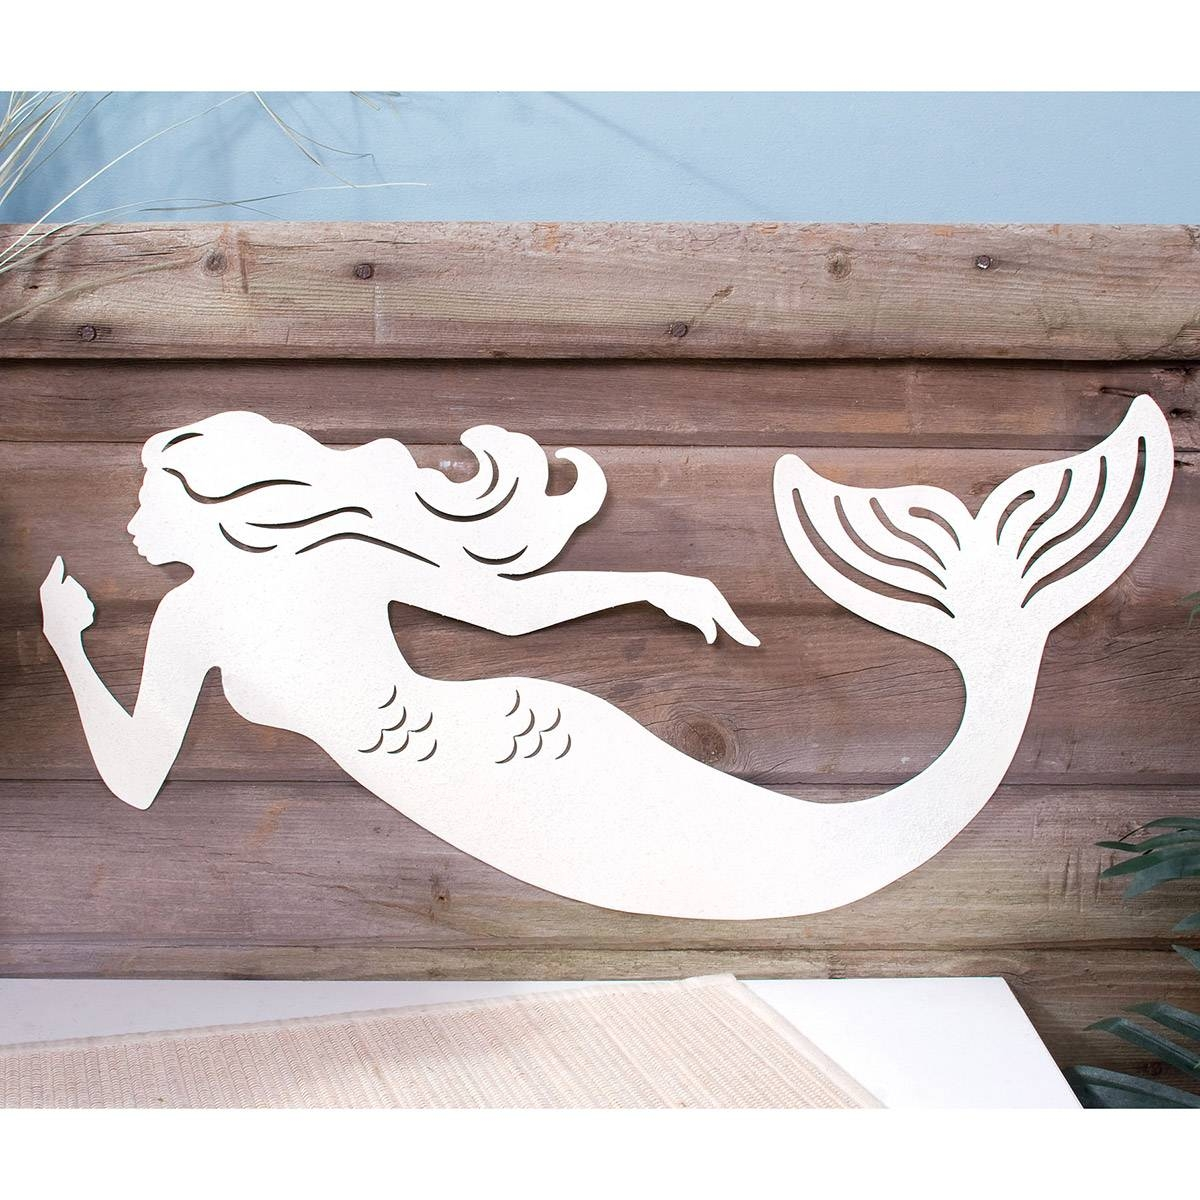 Sea Chic Mermaid Silhouette Metal Sign | Beach Decor | Retroplanet For Latest Mermaid Metal Wall Art (View 19 of 20)